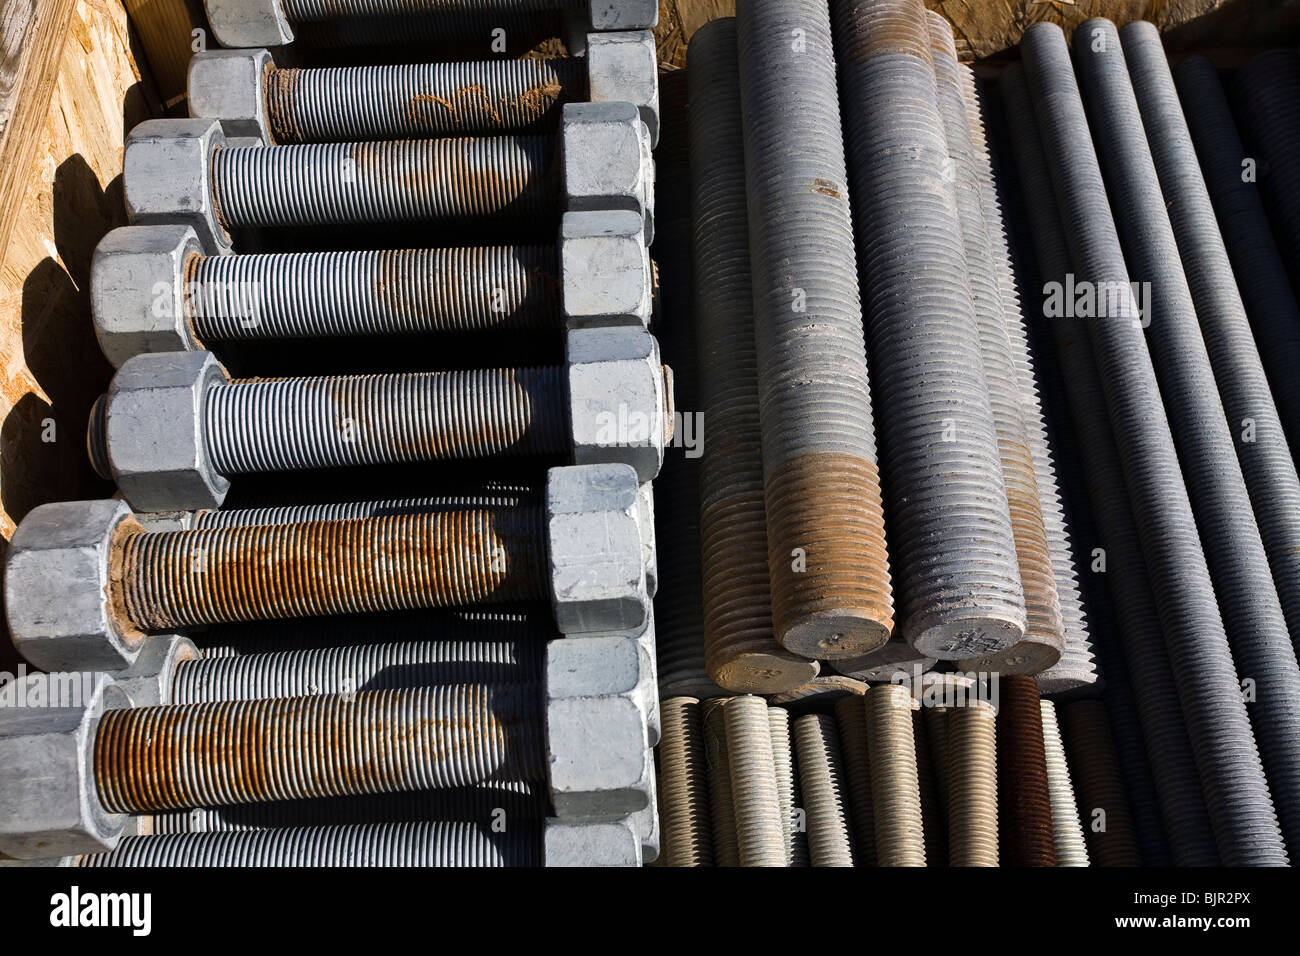 Very large threaded bolts and nuts Stock Photo: 28781282 - Alamy